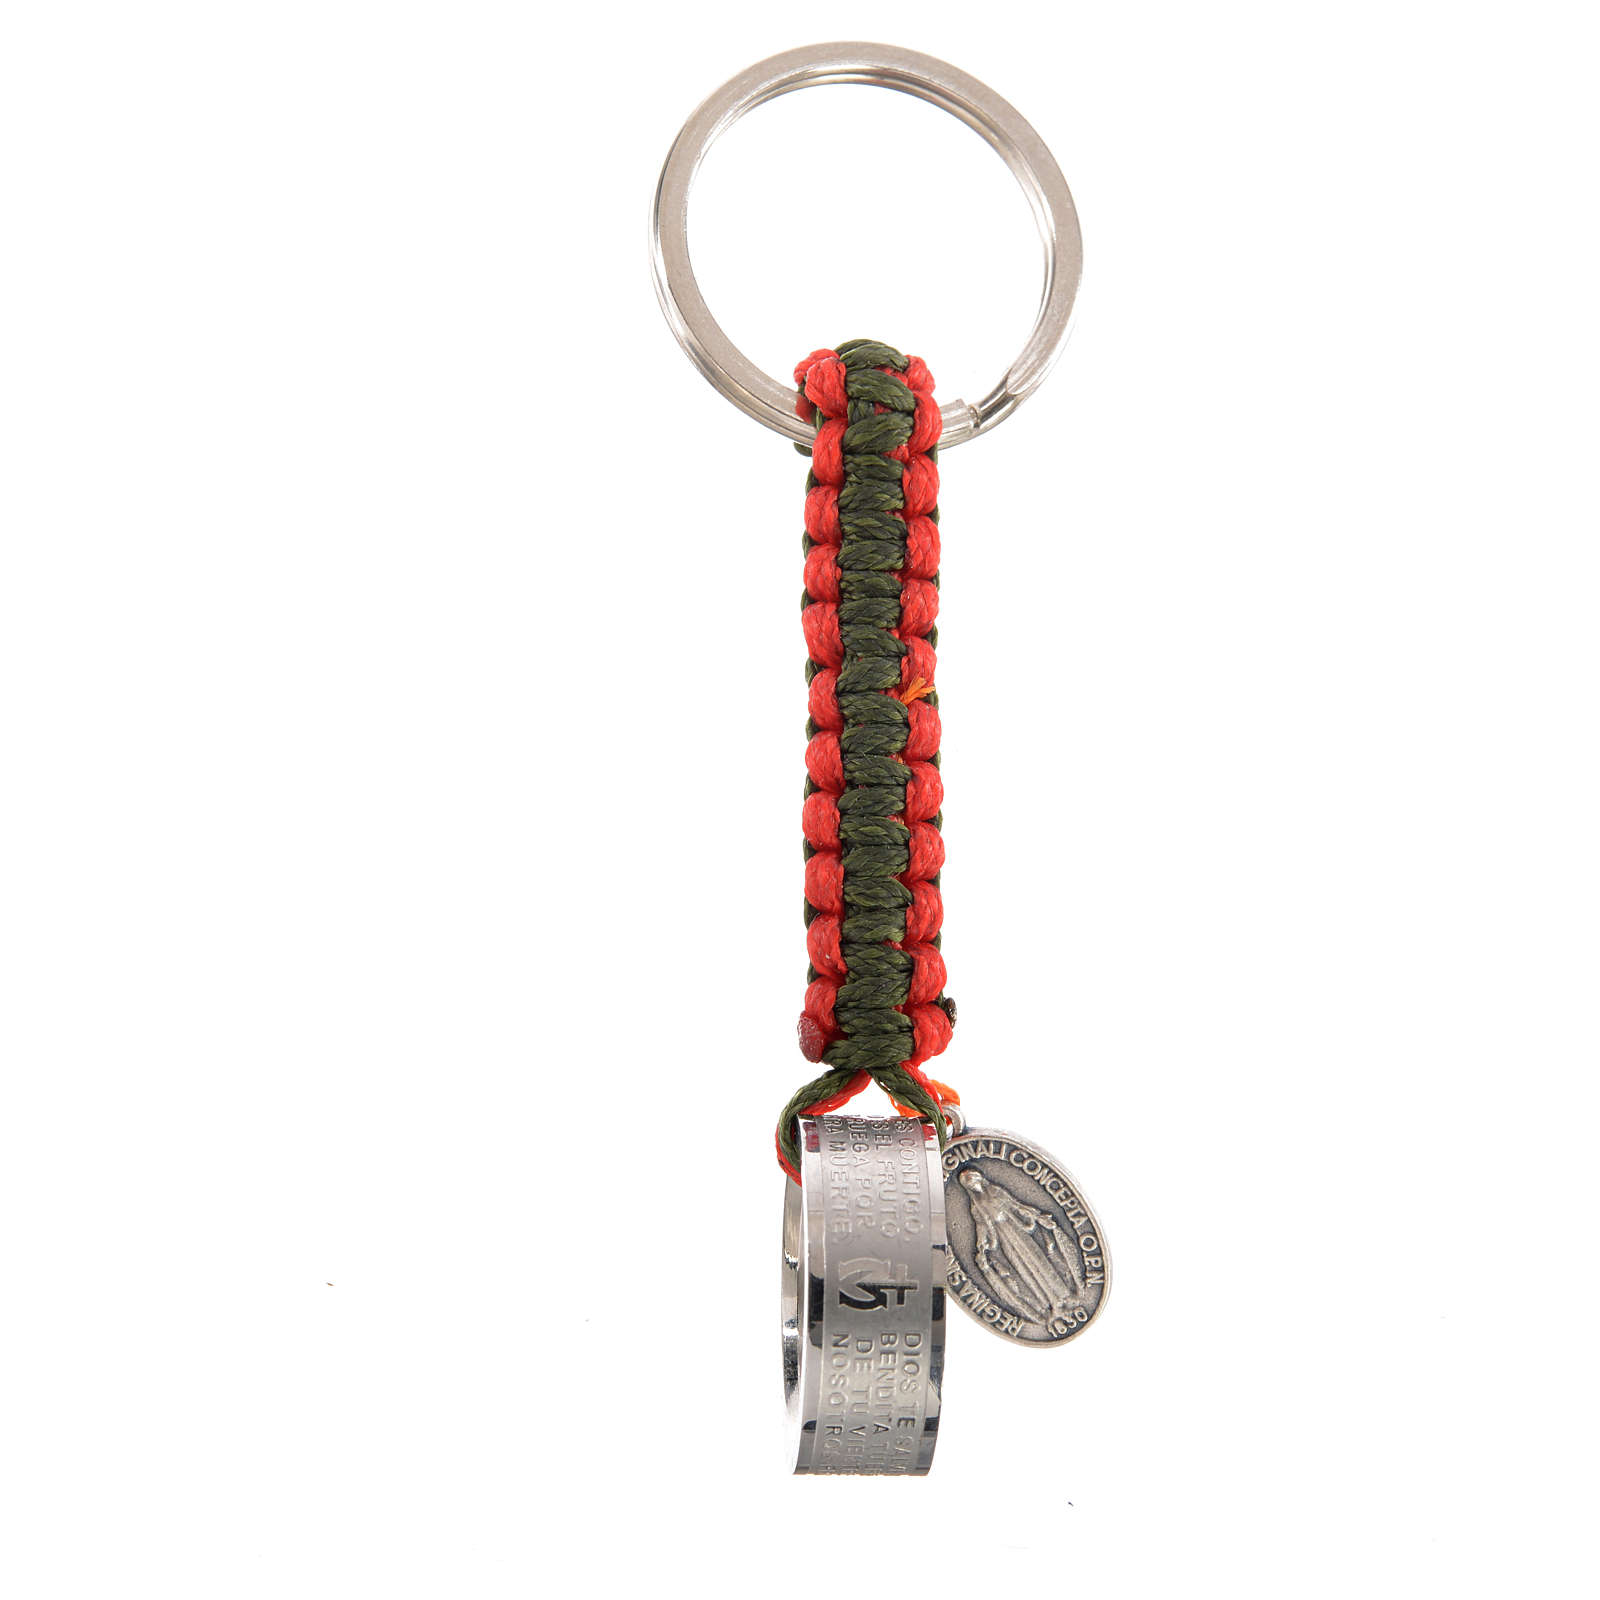 Key chain with Hail Mary prayer in Spanish, red and green cord 3